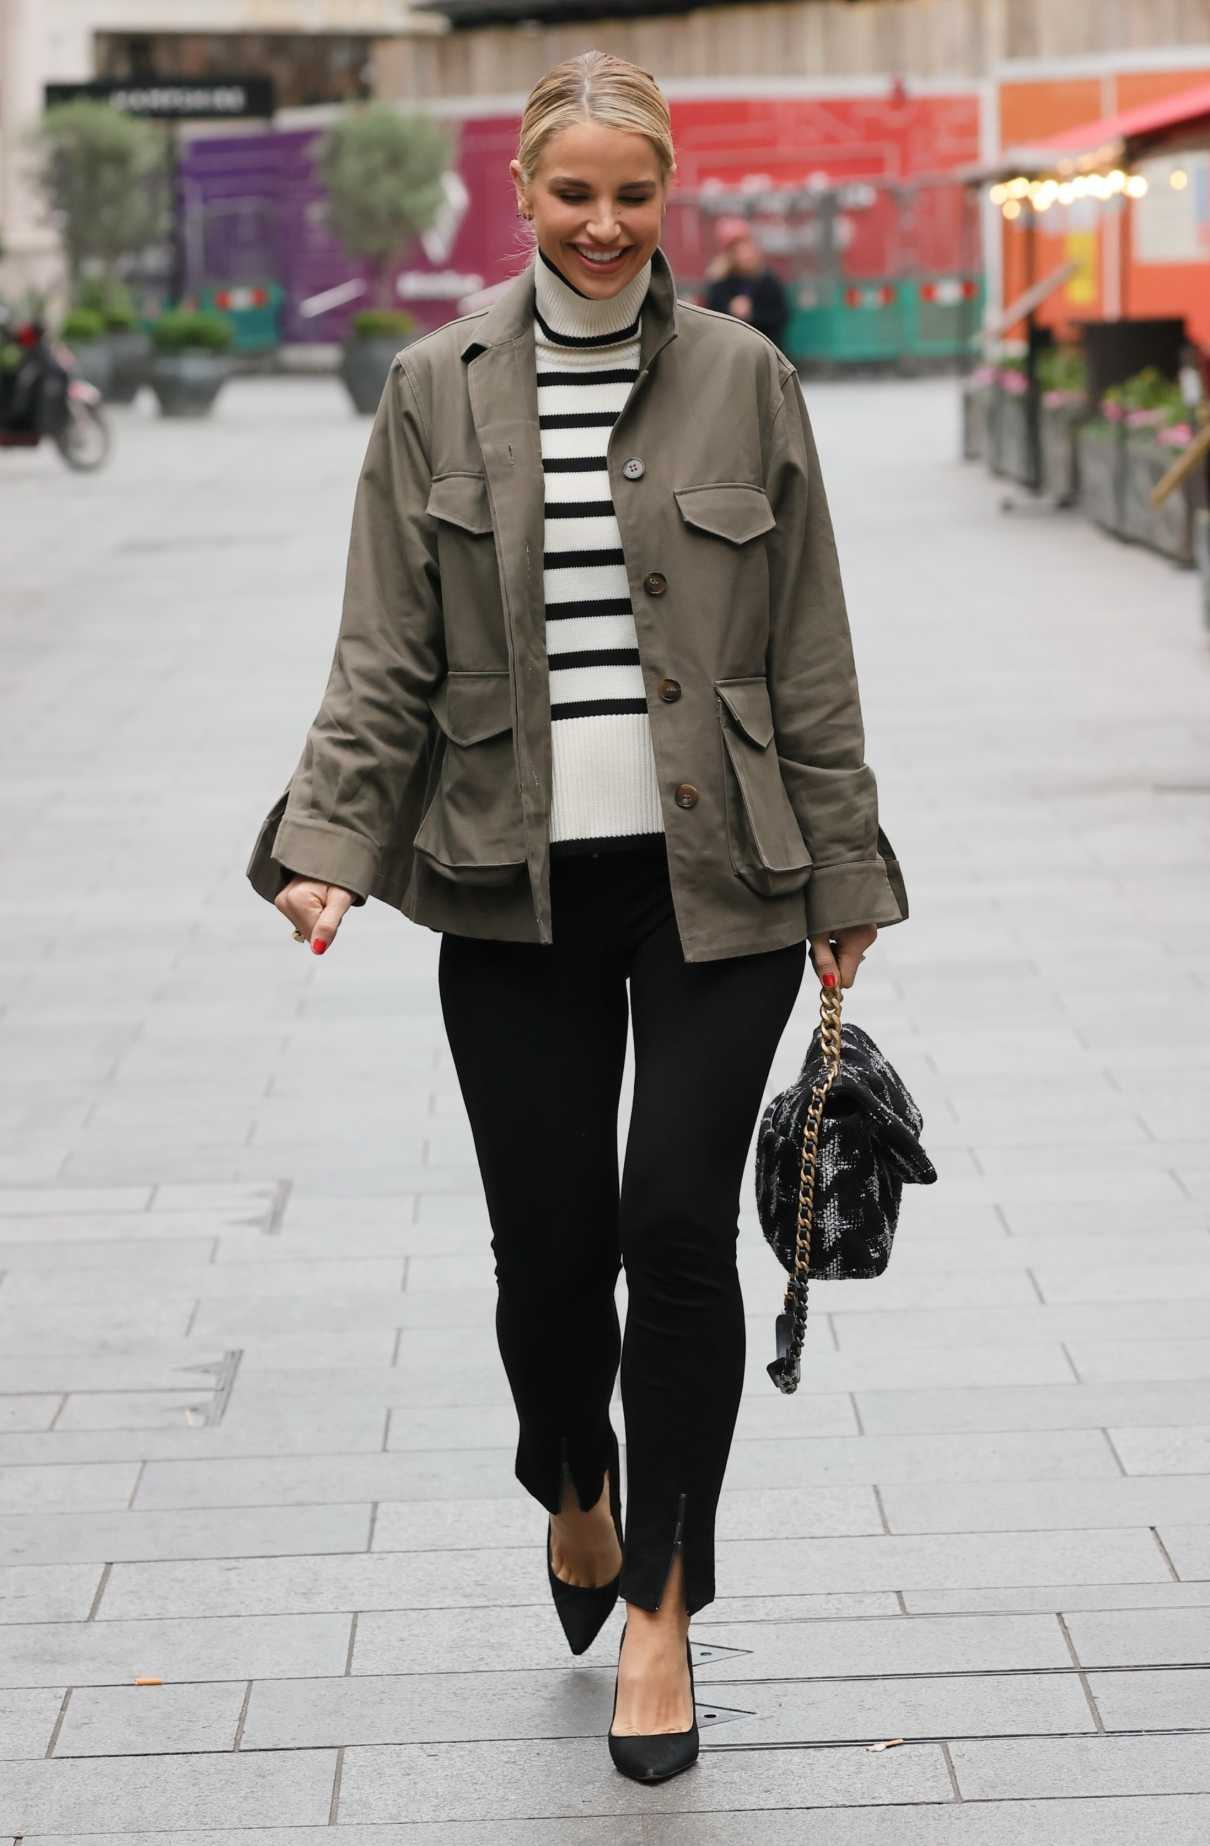 Vogue Williams in an Olive Jacket